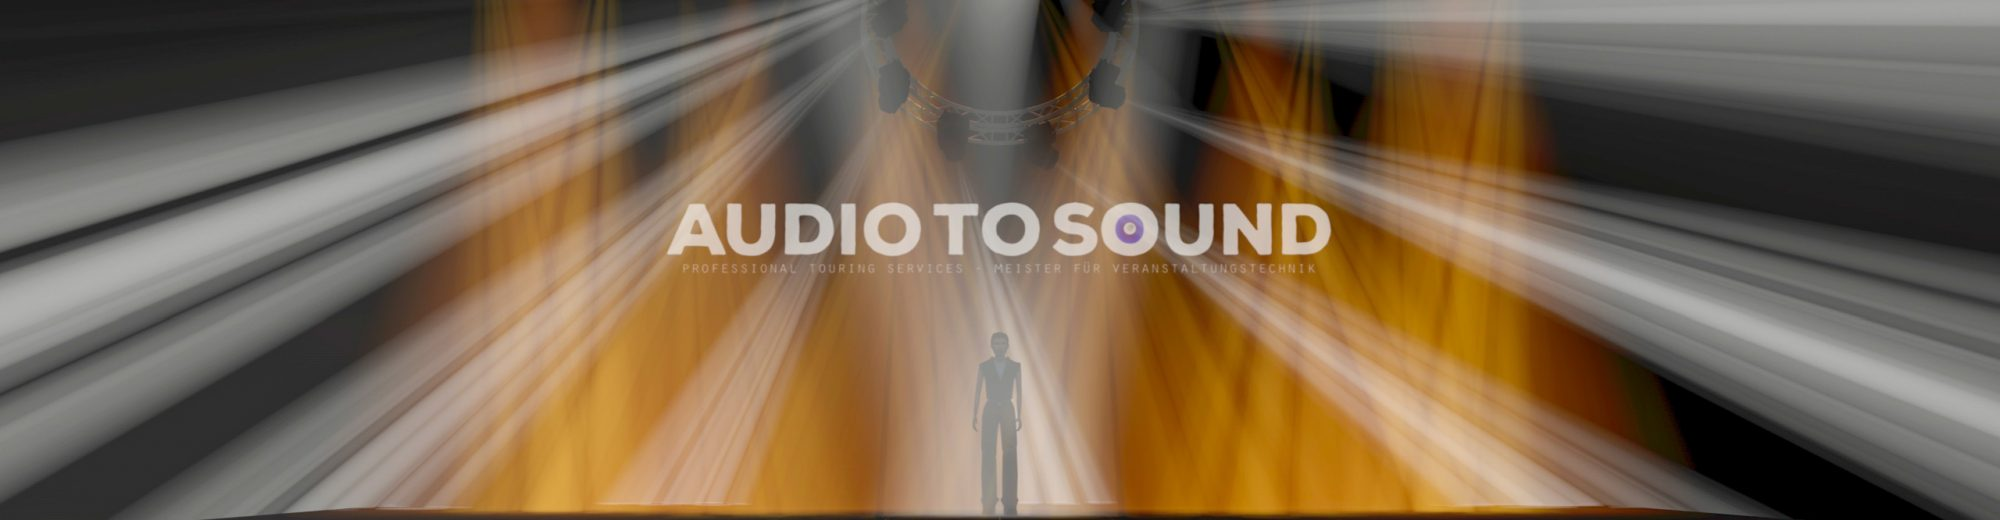 AUDIO TO SOUND